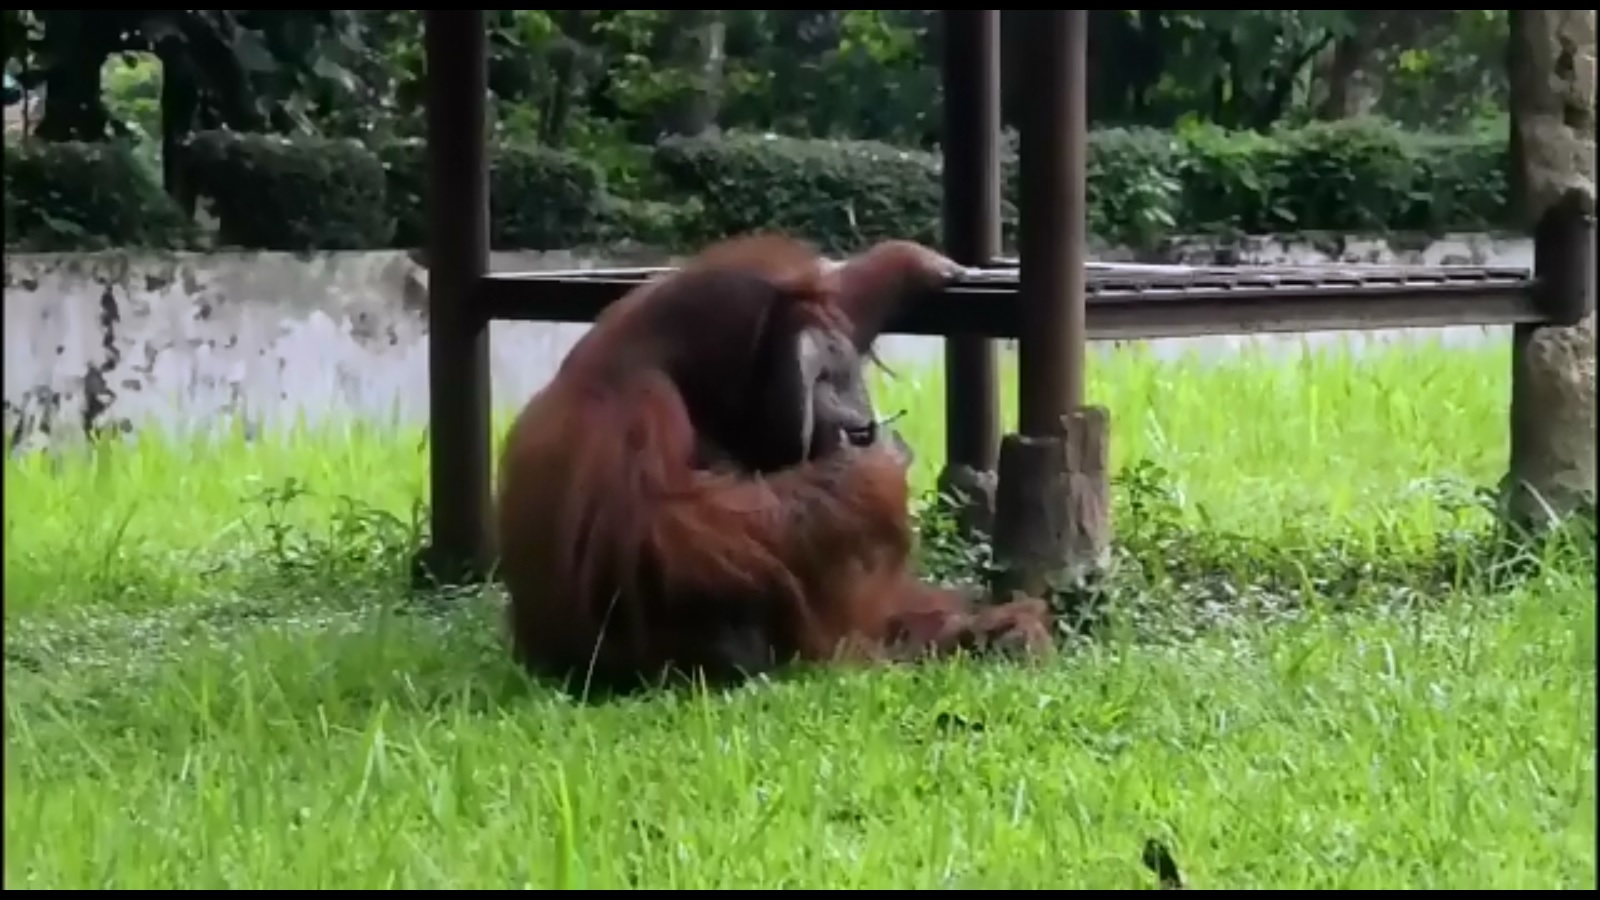 Smoking orangutan in Indonesia sparks outrage